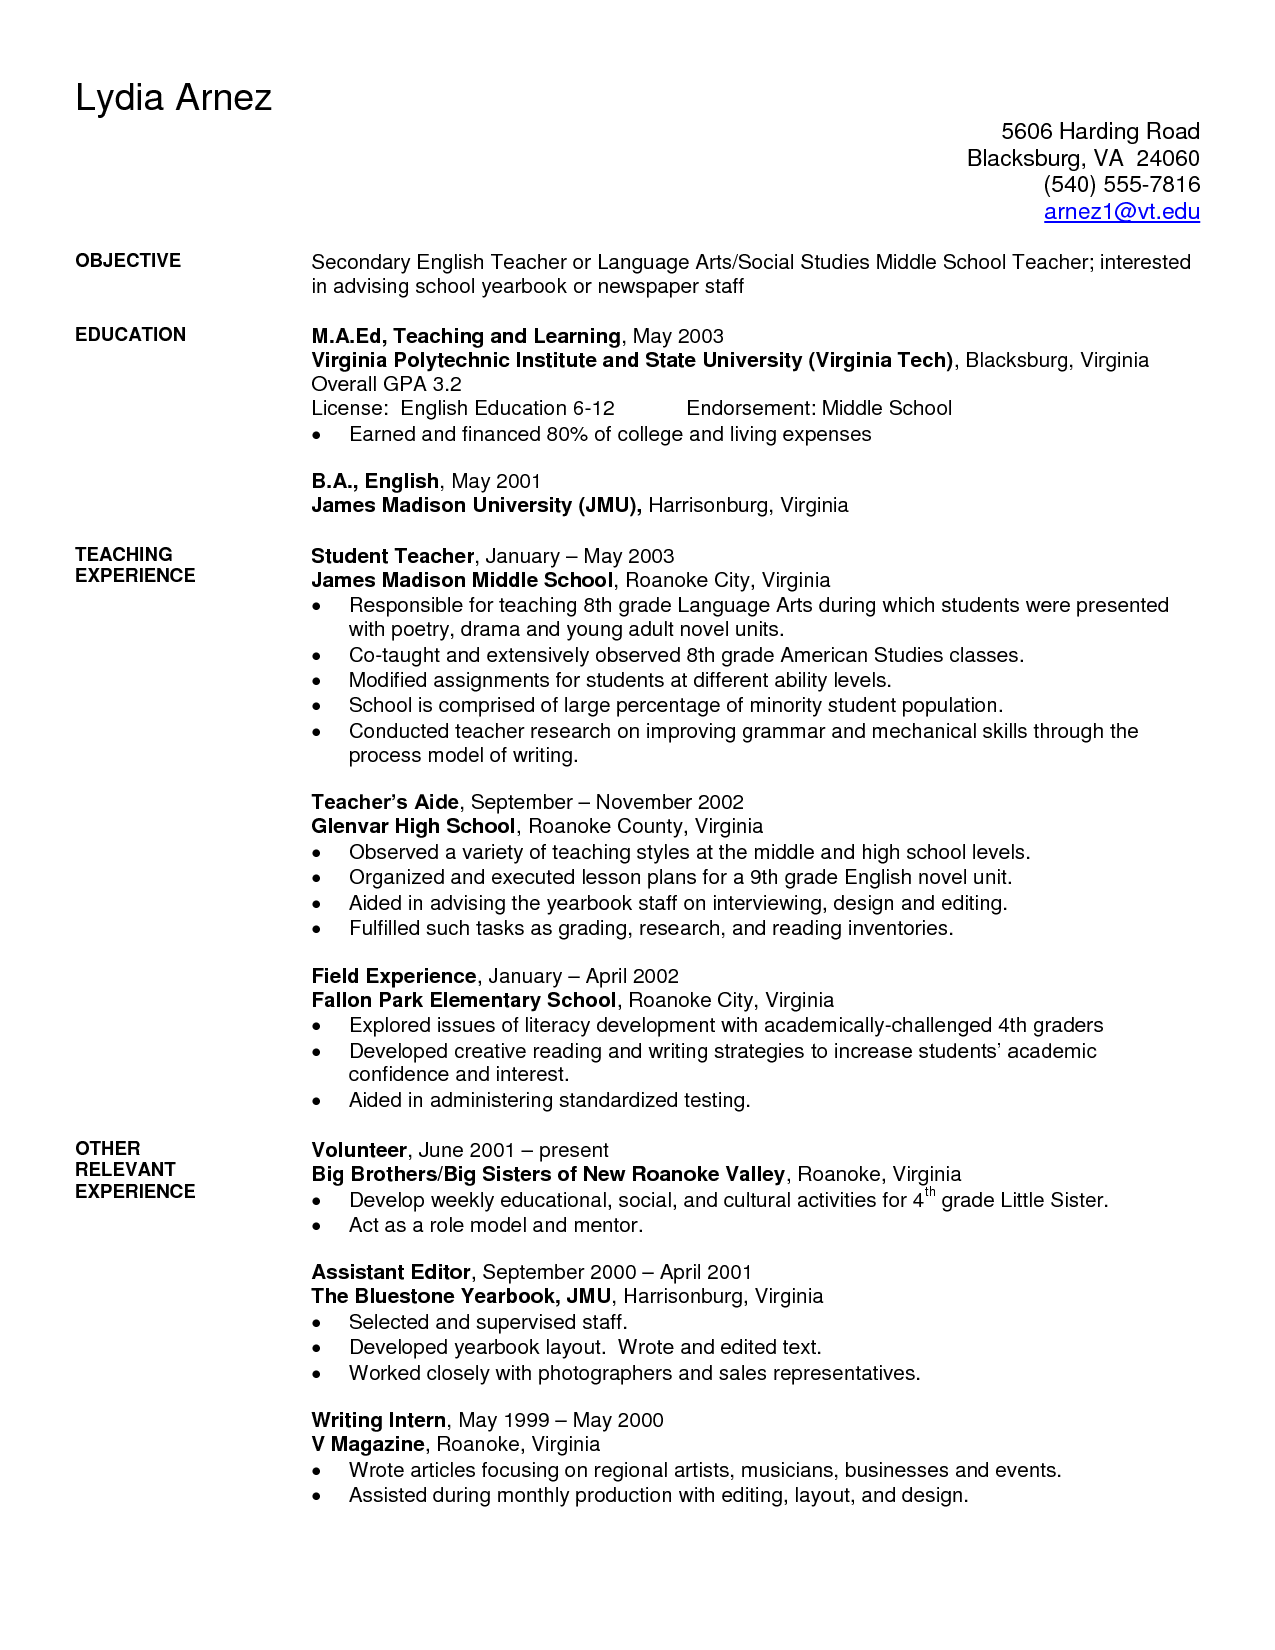 Teacher Resume Examples Magnificent Art Ceramic Teacher Resume  Resume  Good To Know  Pinterest Design Ideas